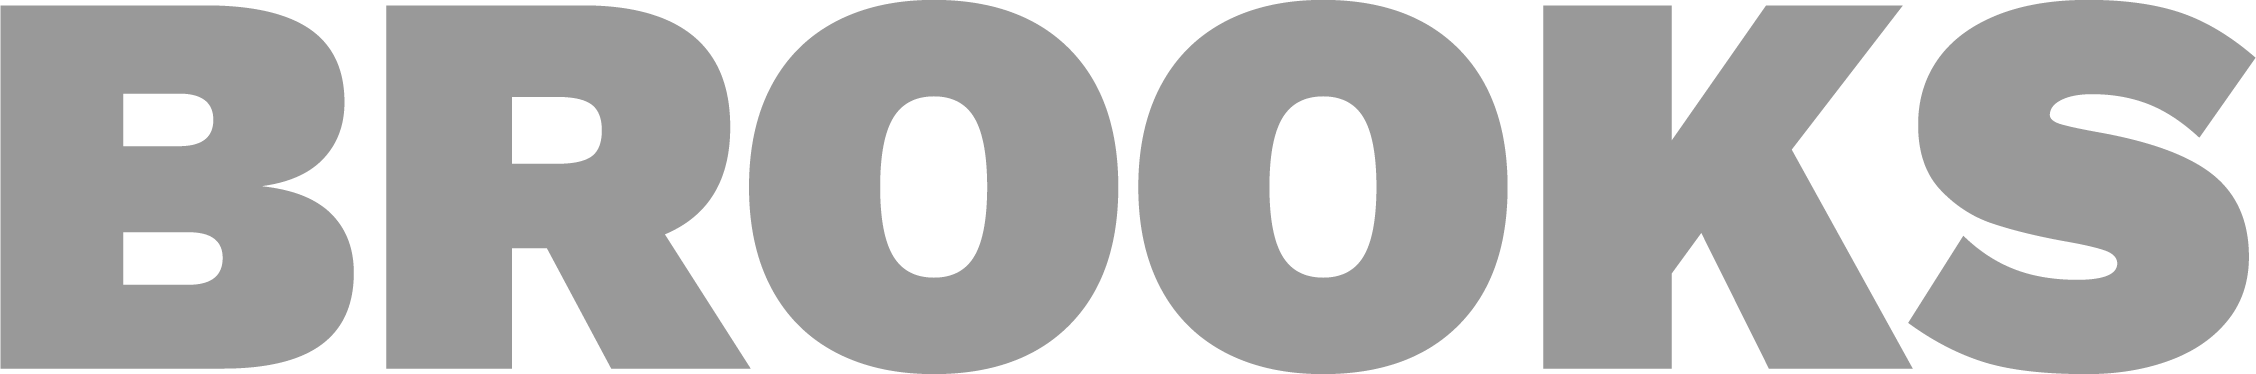 Brooks-logo-black-transparency.png